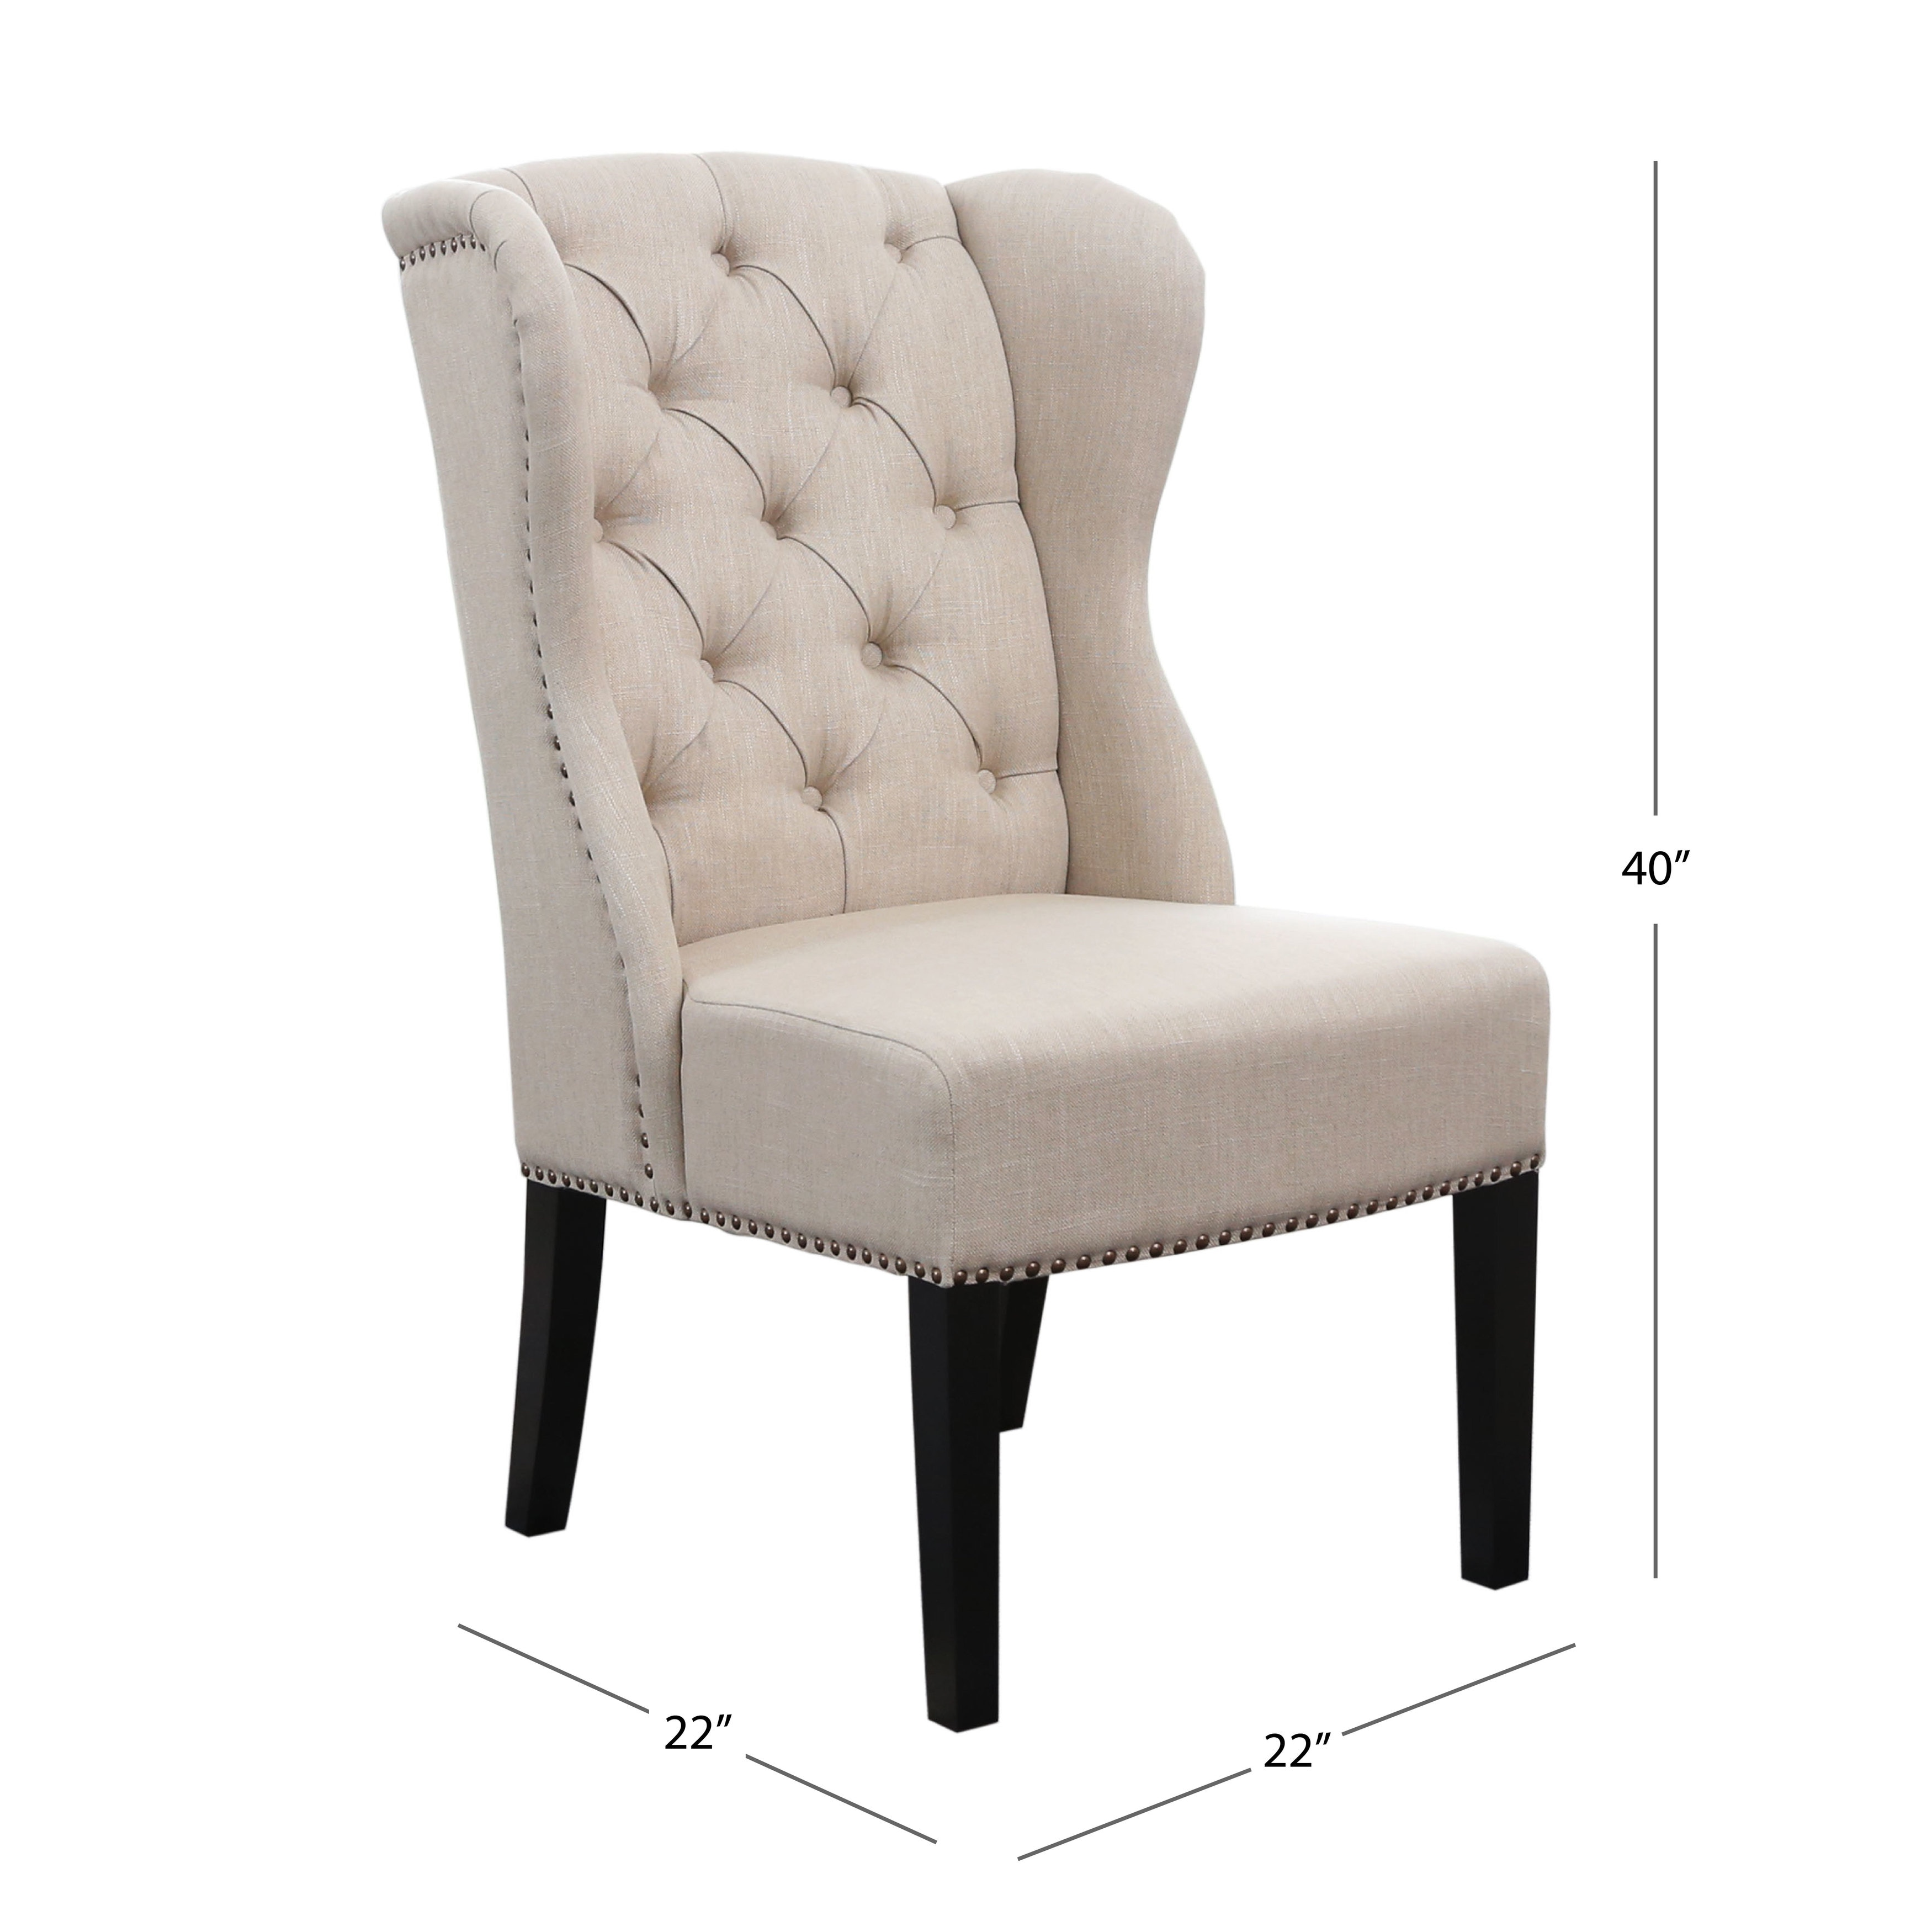 Abbyson Sierra Tufted Cream Linen Wingback Dining Chair On Sale Overstock 9554849